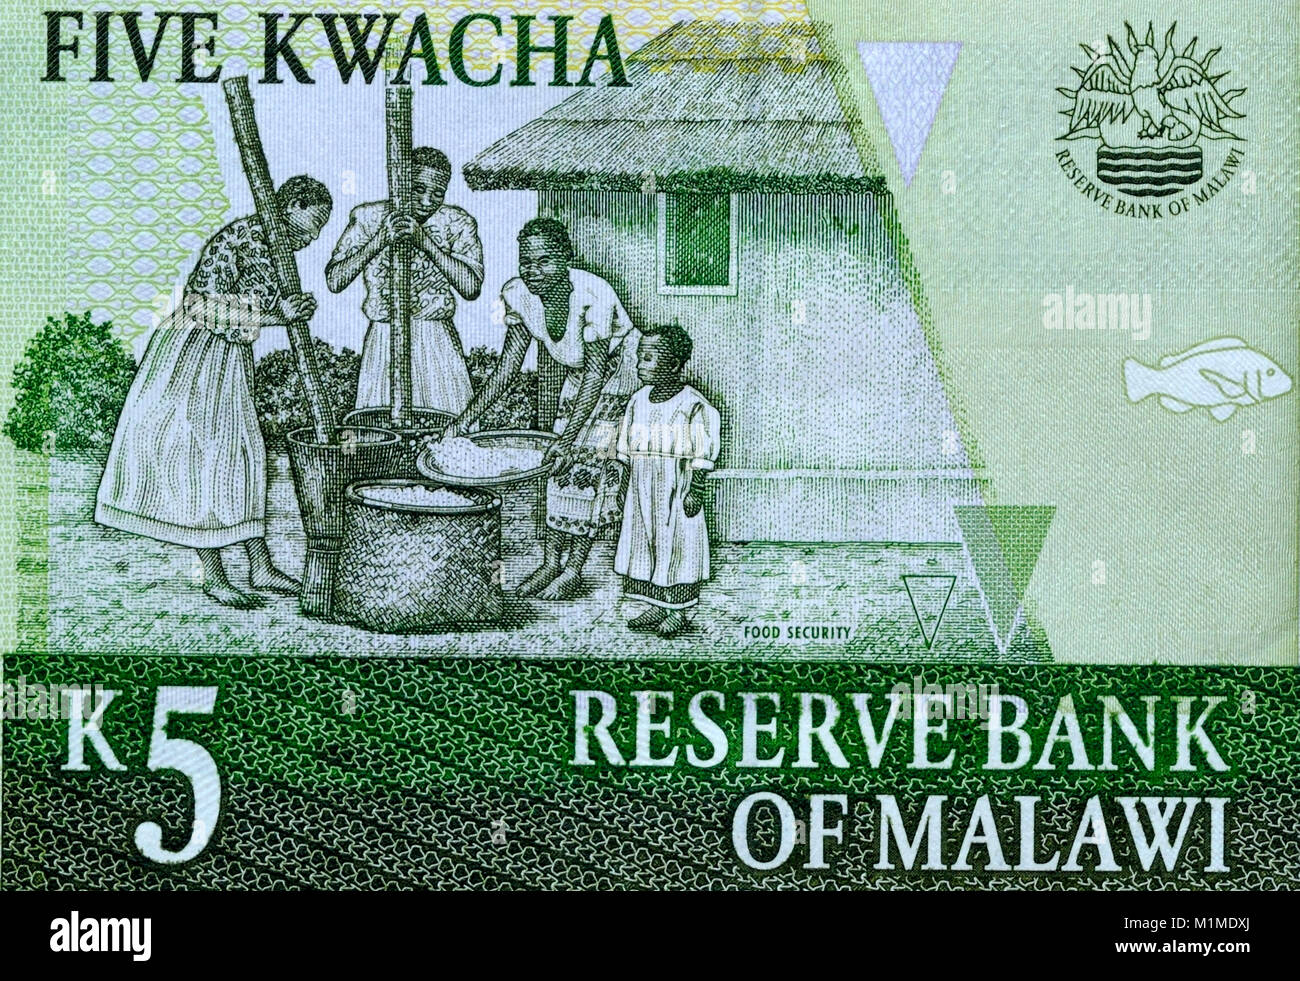 Malawi Five 5 Kwacha Bank Notes - Stock Image